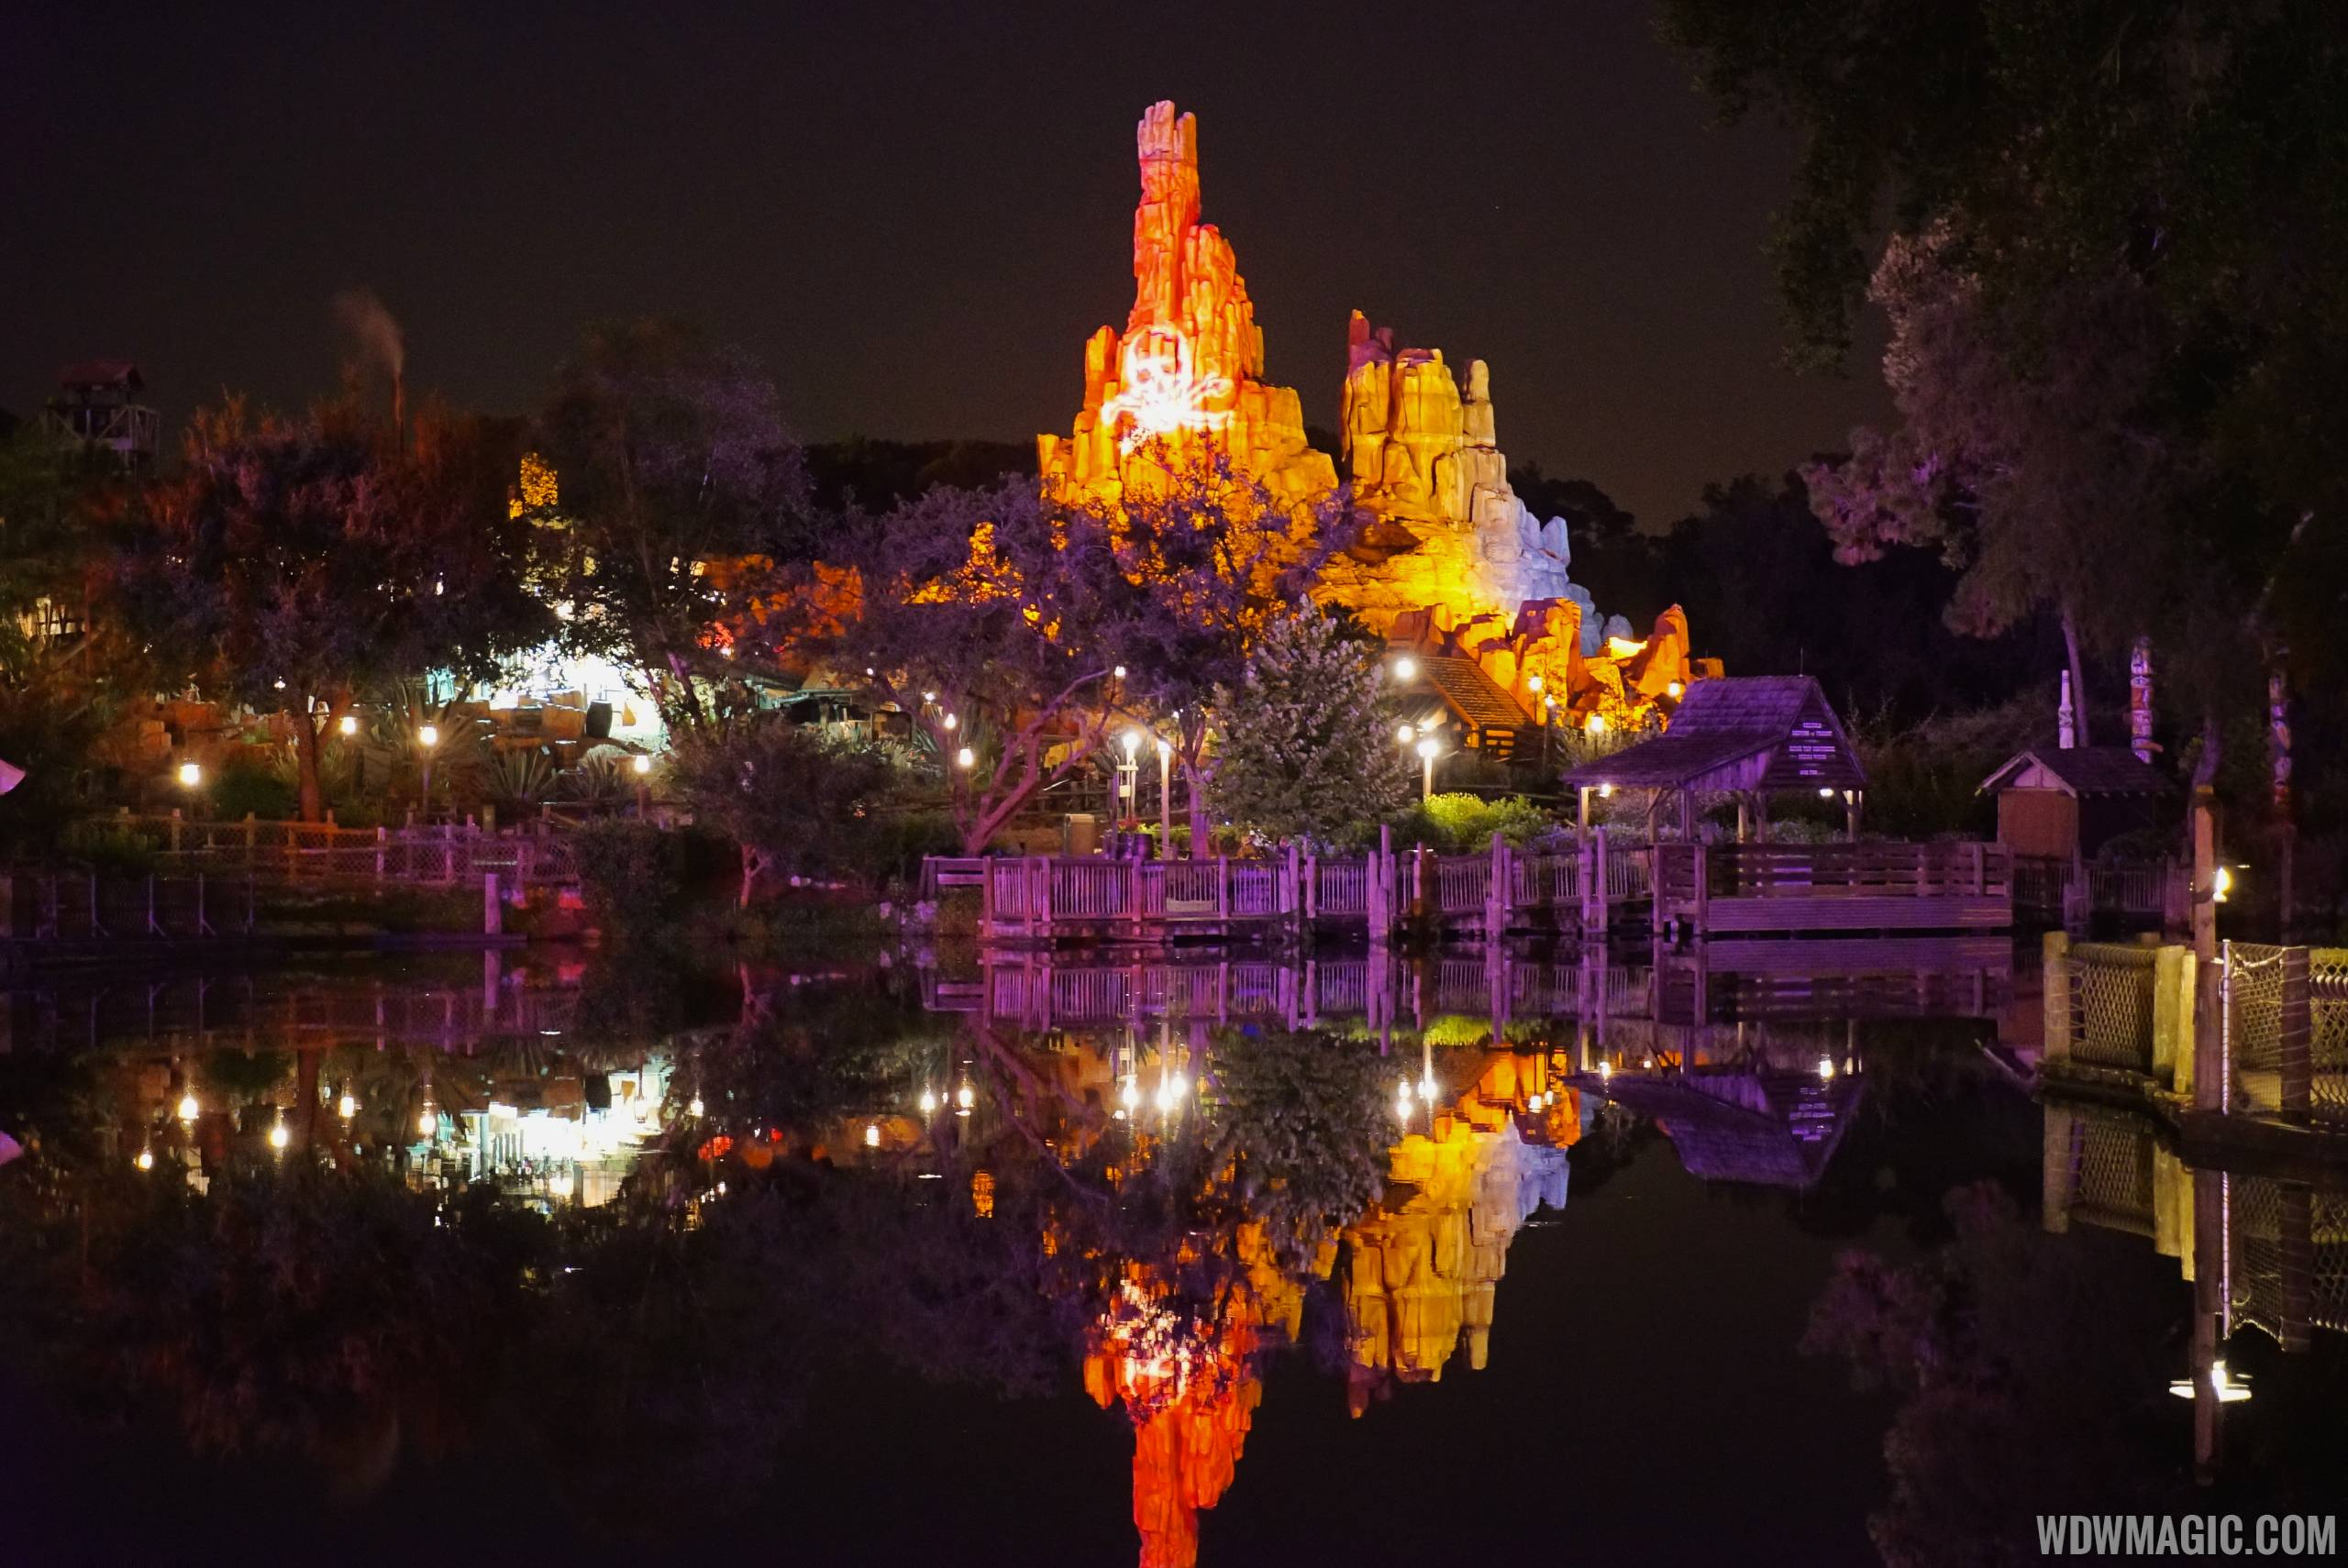 Mickey's Not-So-Scary Halloween Party 2014 - Photo 55 of 84 on